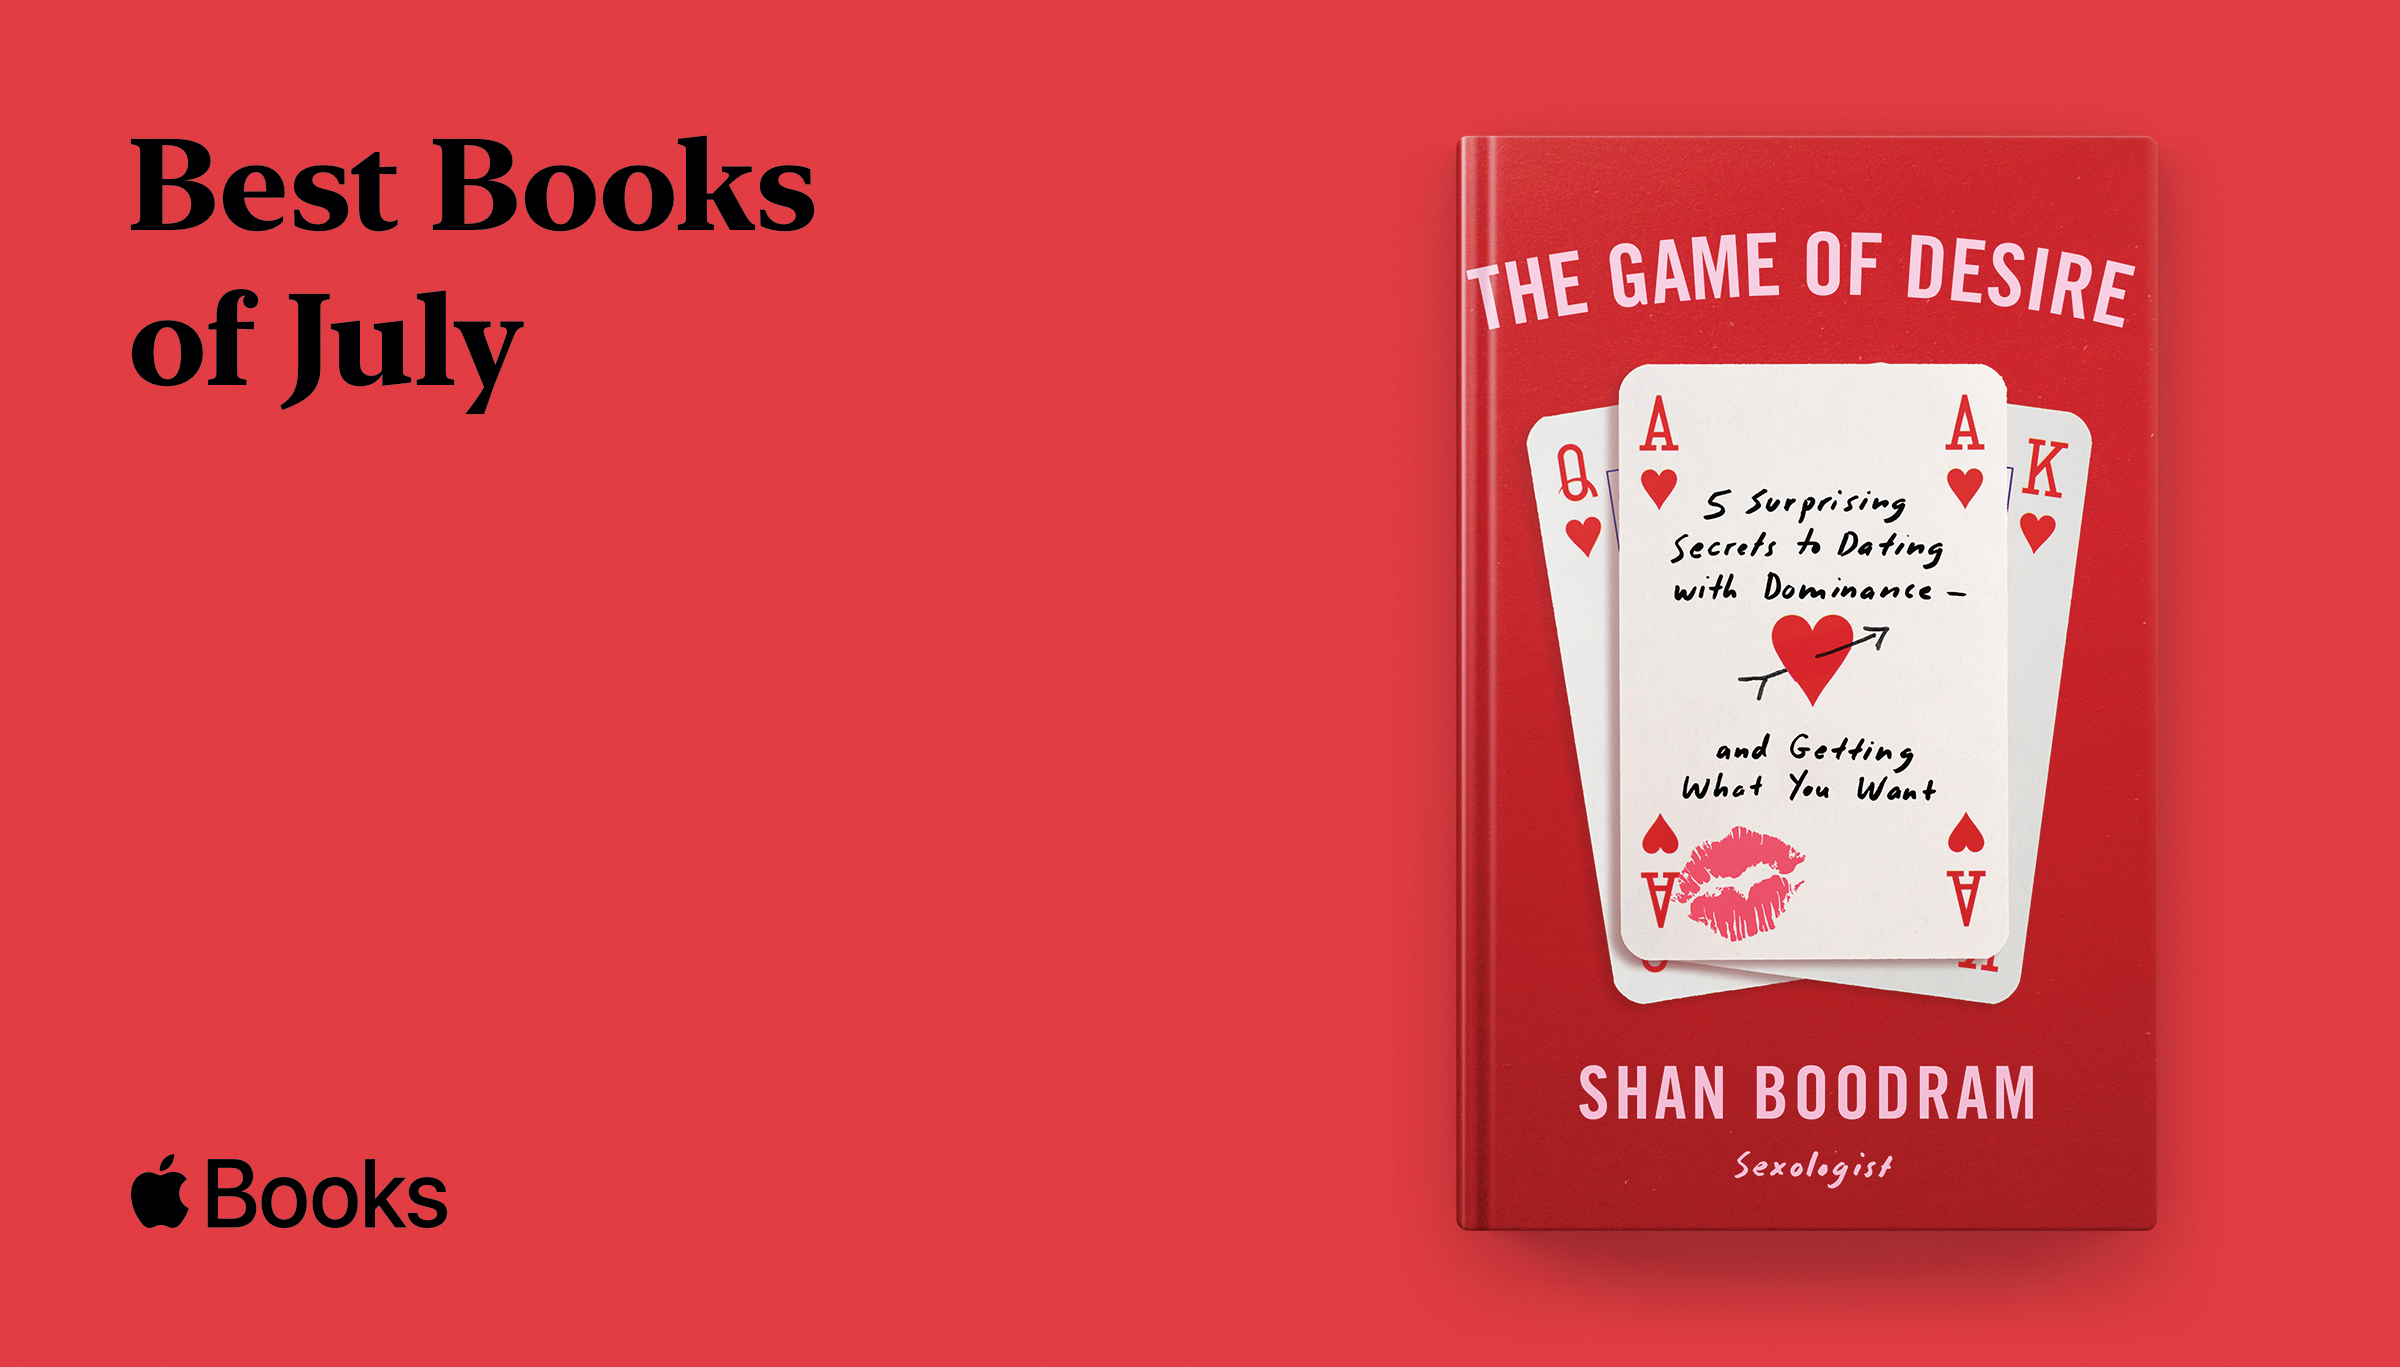 """Apple Books Review - """"Forget what you think you know about dating—sexologist Shan Boodram is here to take you back to school. In her funny, personable book, she asserts that landing the person of your dreams starts with you. To illustrate that point, while providing us with quizzes and questions to help us get to know ourselves better, she details a summer spent guiding six women into new dating habits. Boodram dares to be blunt, but is never unkind. The """"game"""" in the title leaves no one on the sidelines, and this coach—who's fearless enough to confirm an ex's allegation of her struggles with BO—charmed us with her ability to level the playing field.""""-Apple Best Books of July"""